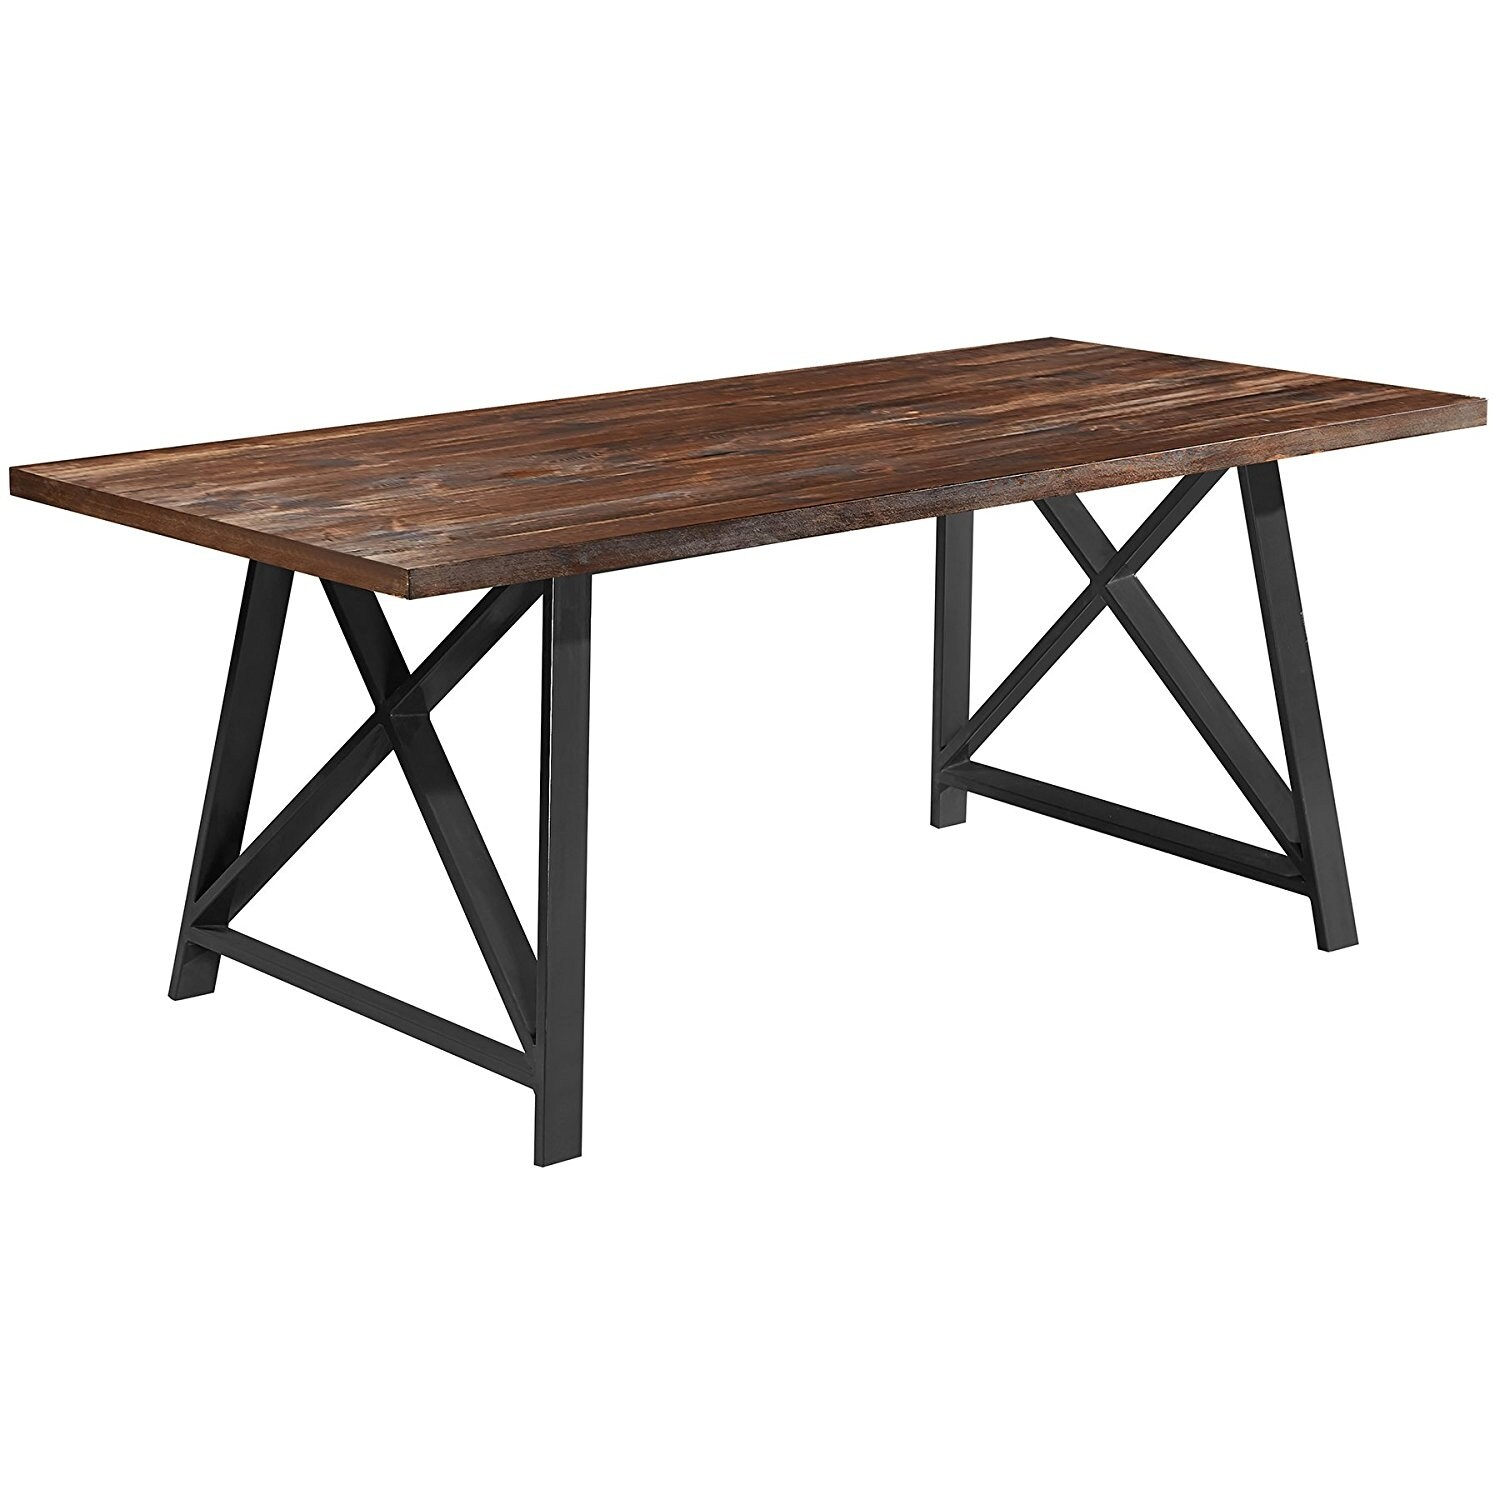 2xhome Dark Wood Mid Century Modern Steel Frame Metal Leg Dining Table Kitchen Home Commercial 71 Inches Brown